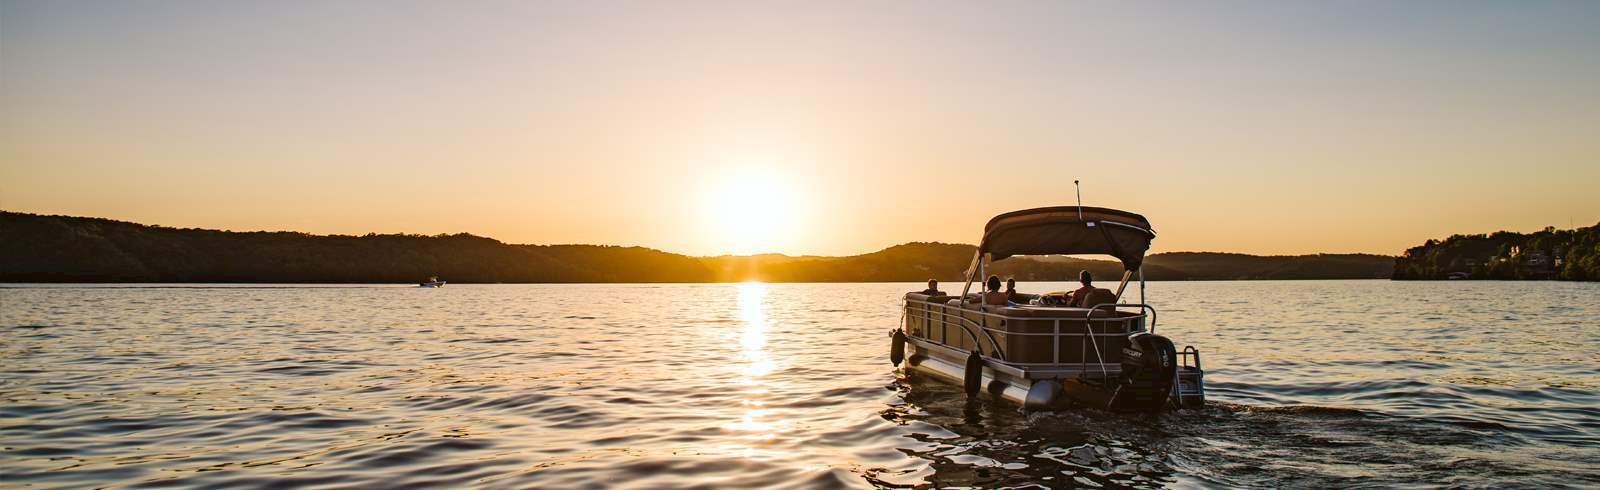 Margaritaville Lake Resort Lake of the Ozarks - Frequently Asked Questions